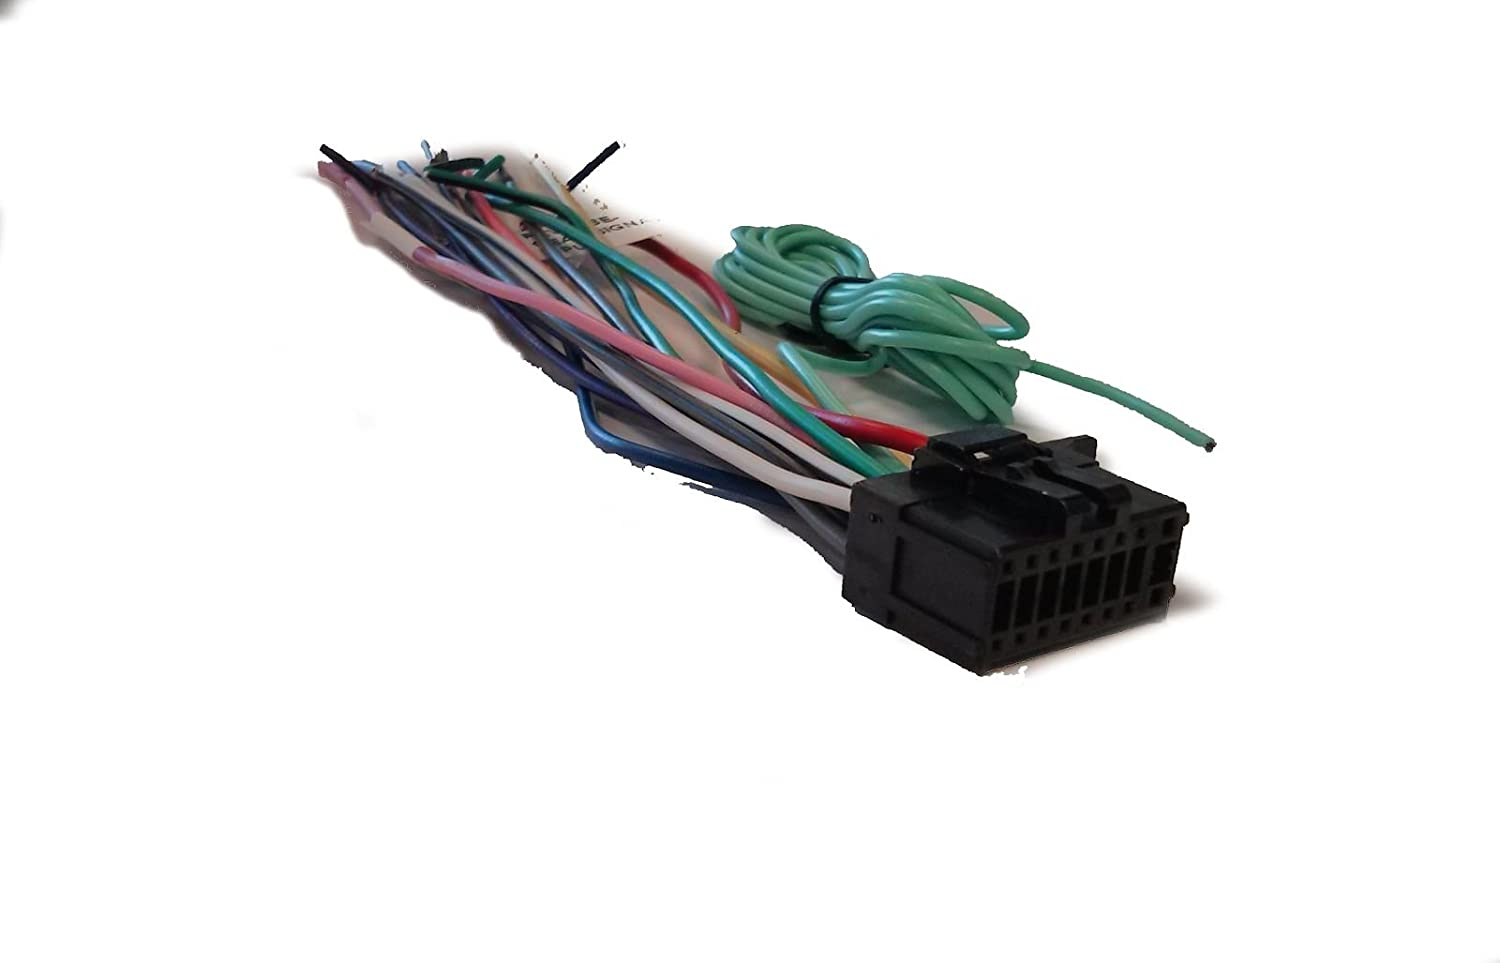 61s%2B2yUu BL._SL1500_ amazon com pioneer wire harness for sph da210 sph da100 sph da200 sph-da100 wiring harness at couponss.co